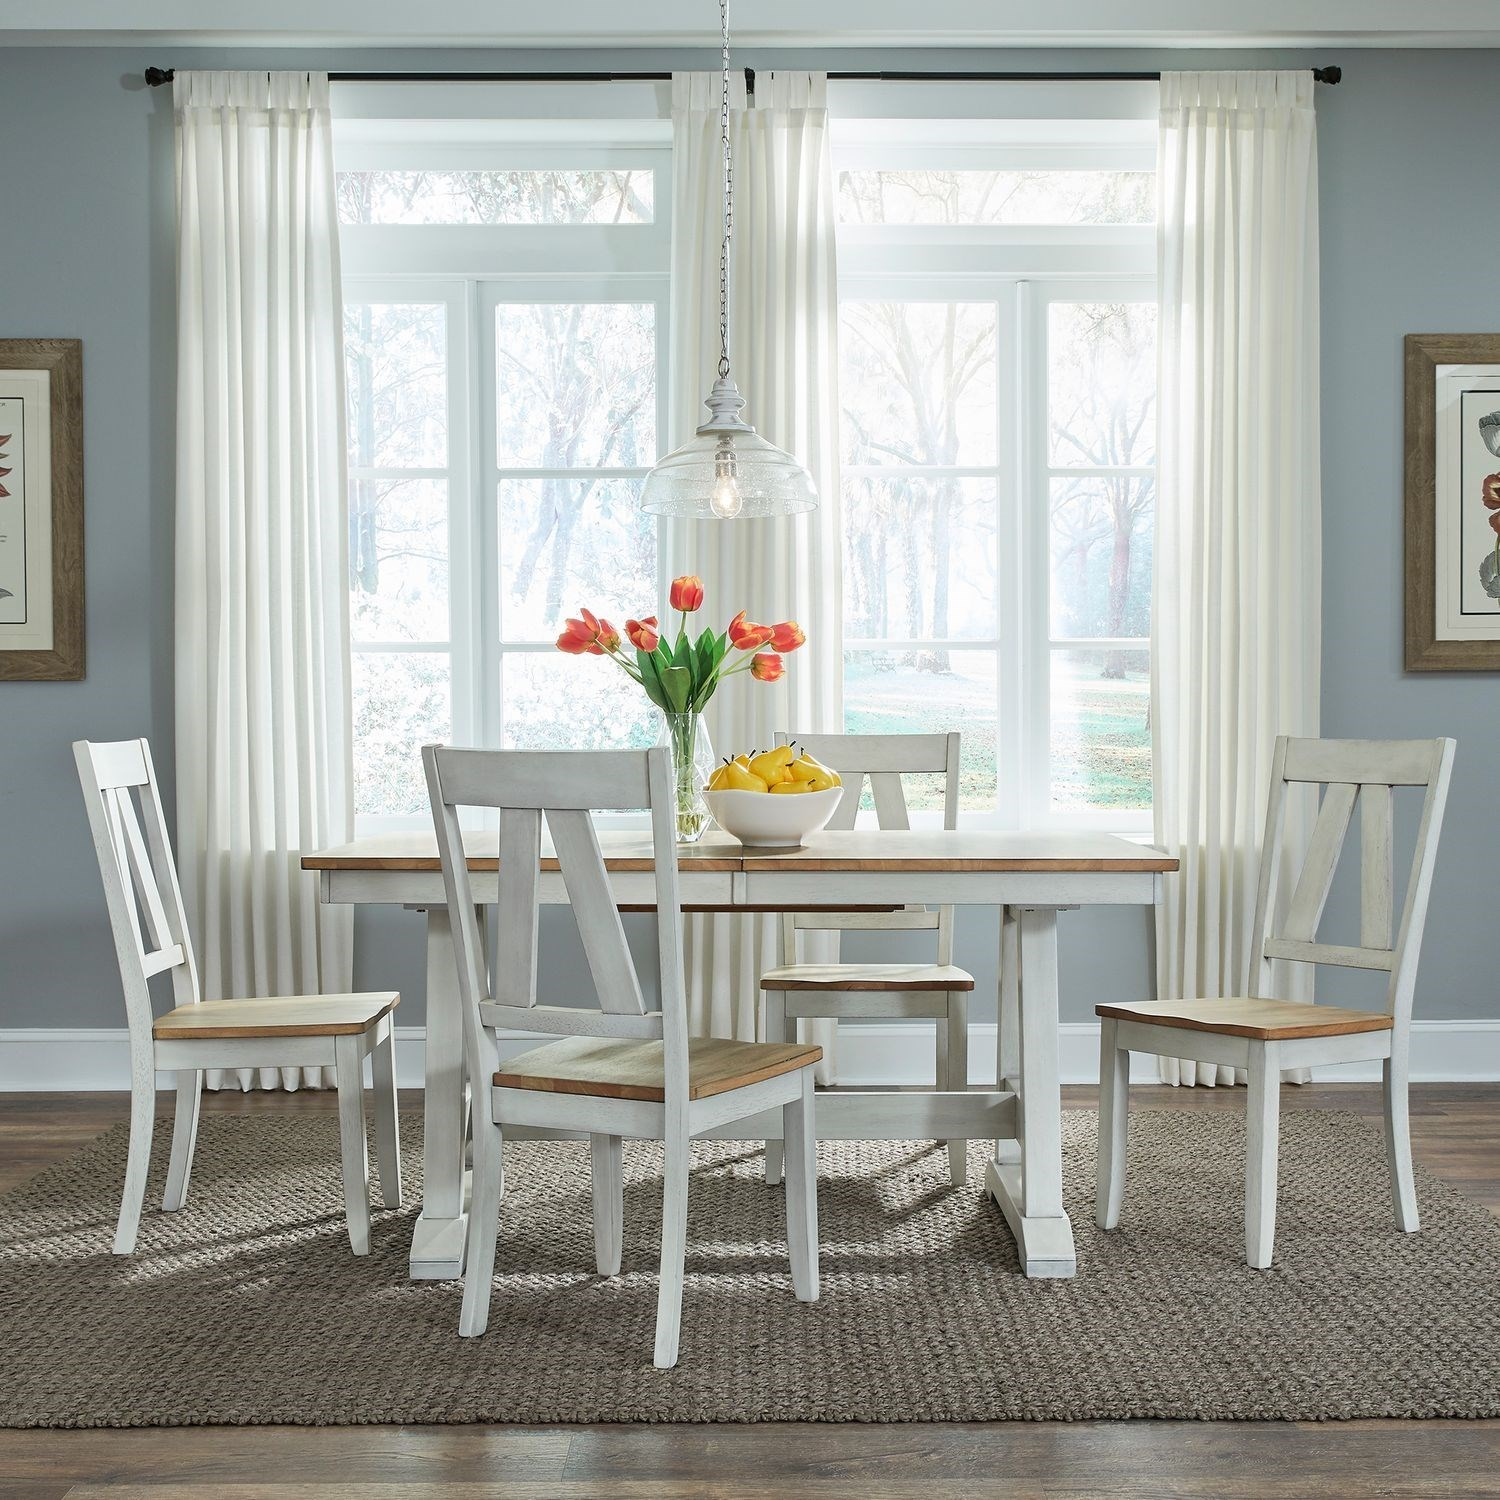 Lindsey Farm 5-Piece Dining Set  by Liberty Furniture at Northeast Factory Direct